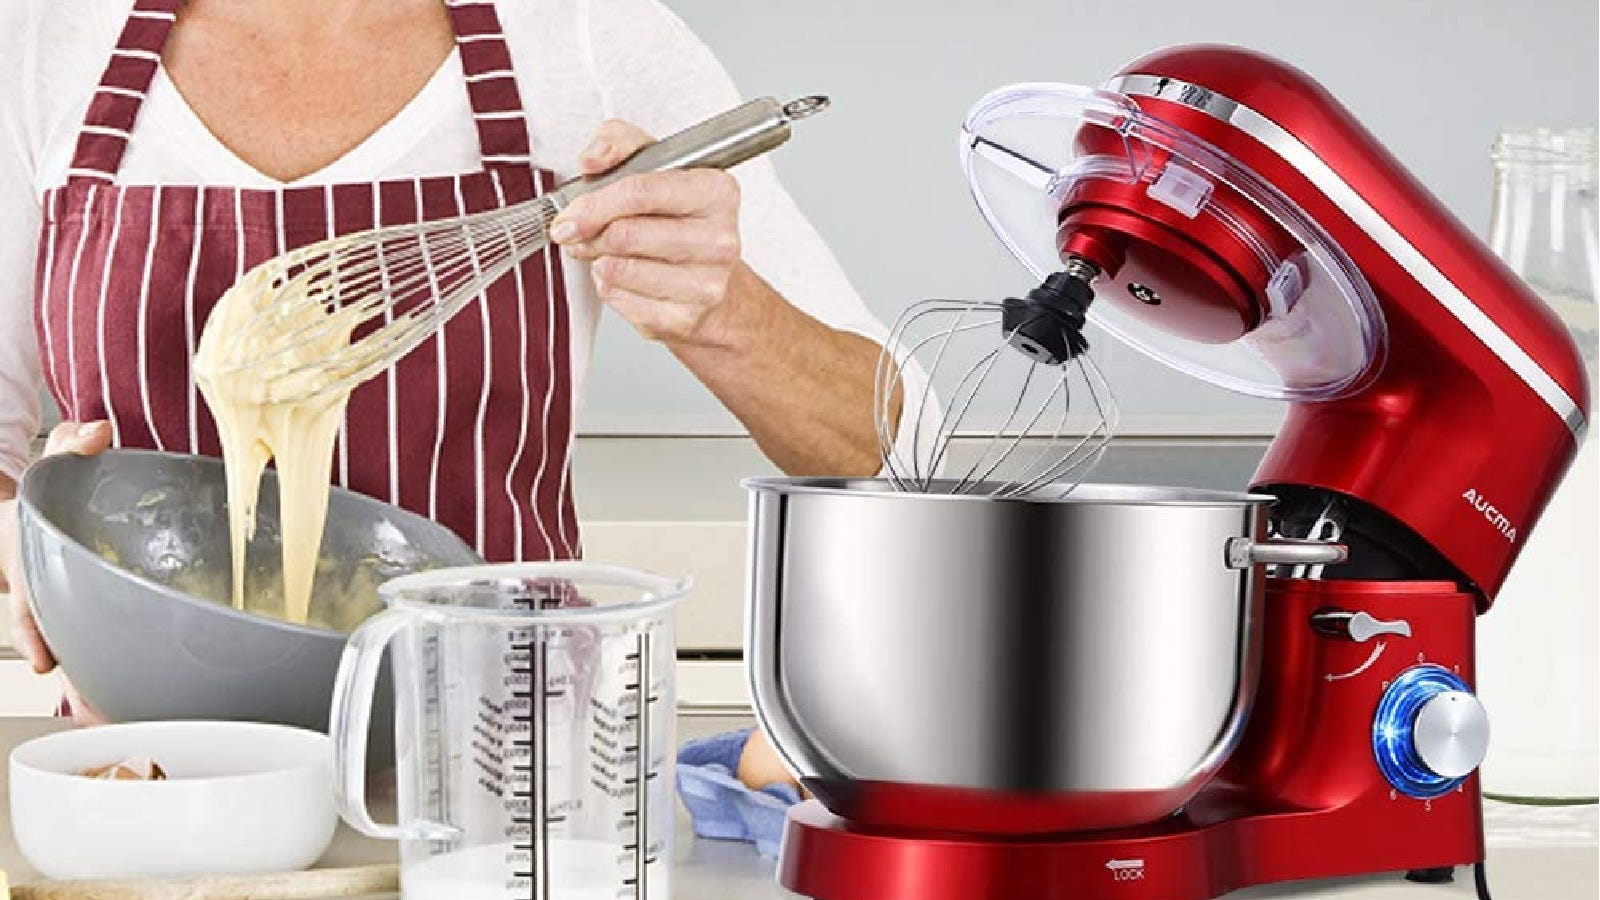 Someone mixing a batter with a red Aucuma stand mixer presented on the counter, with several ingredients and cooking gadgets surrounding it.